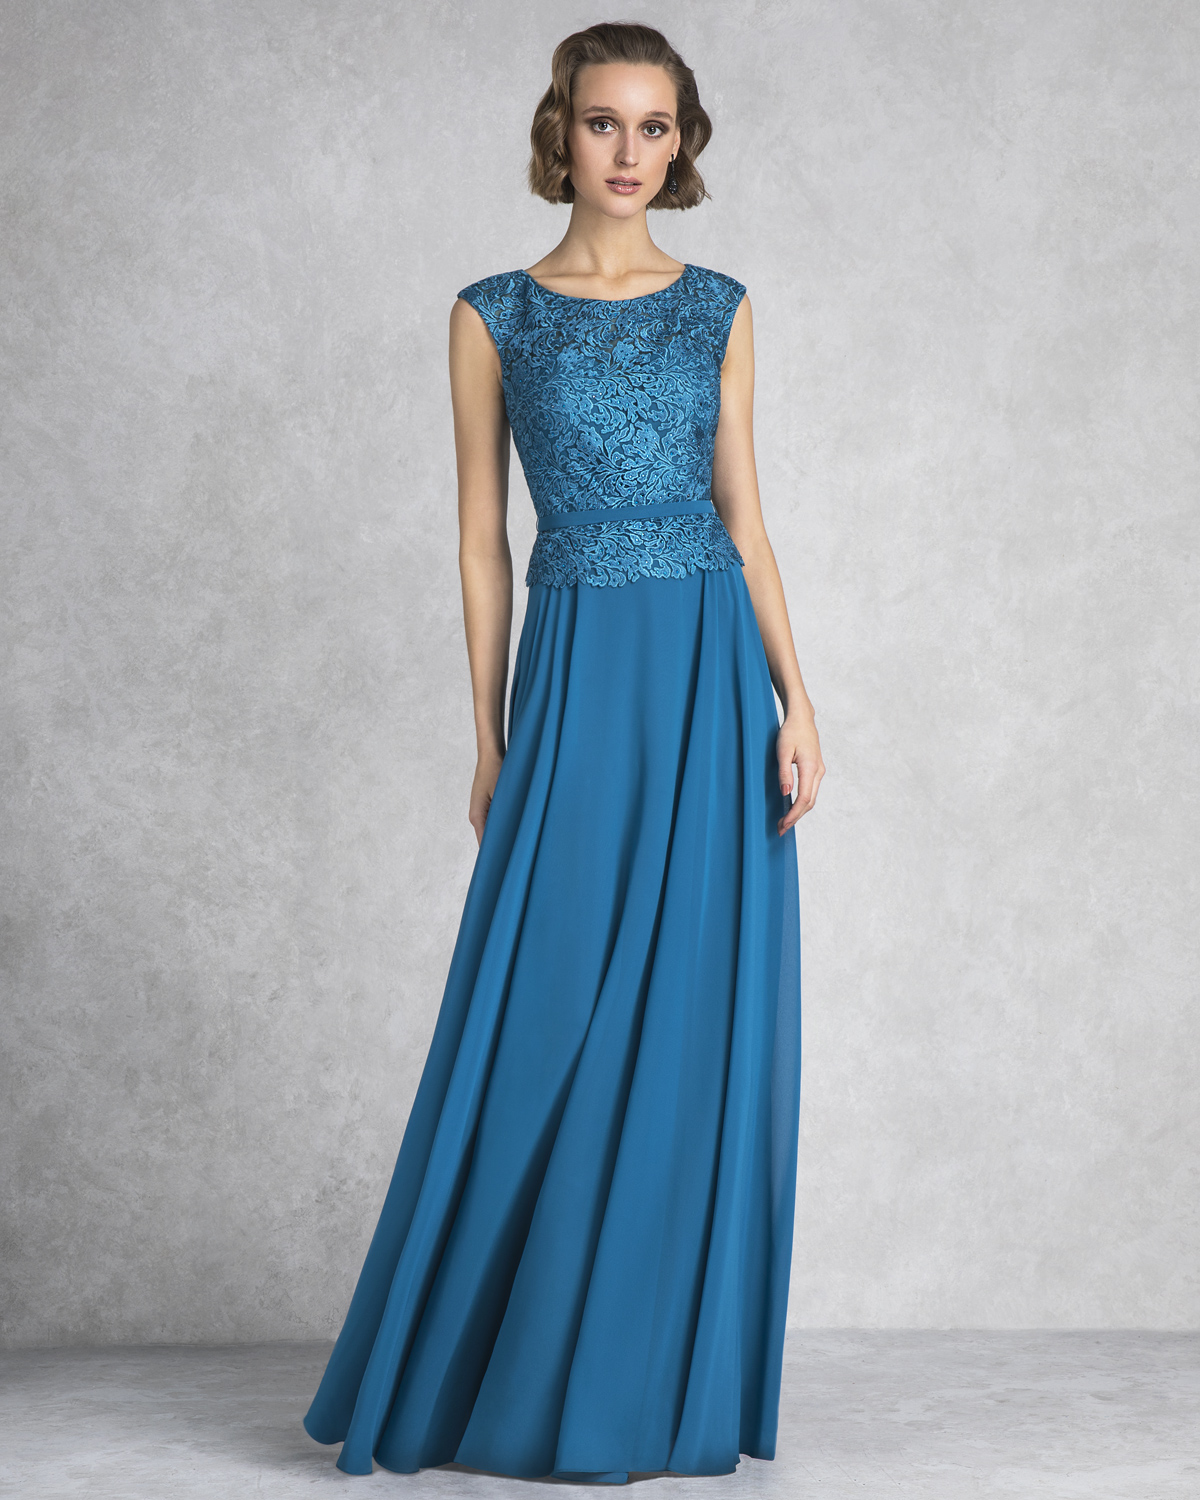 Classic Dresses / Long evening dress with lace beaded top